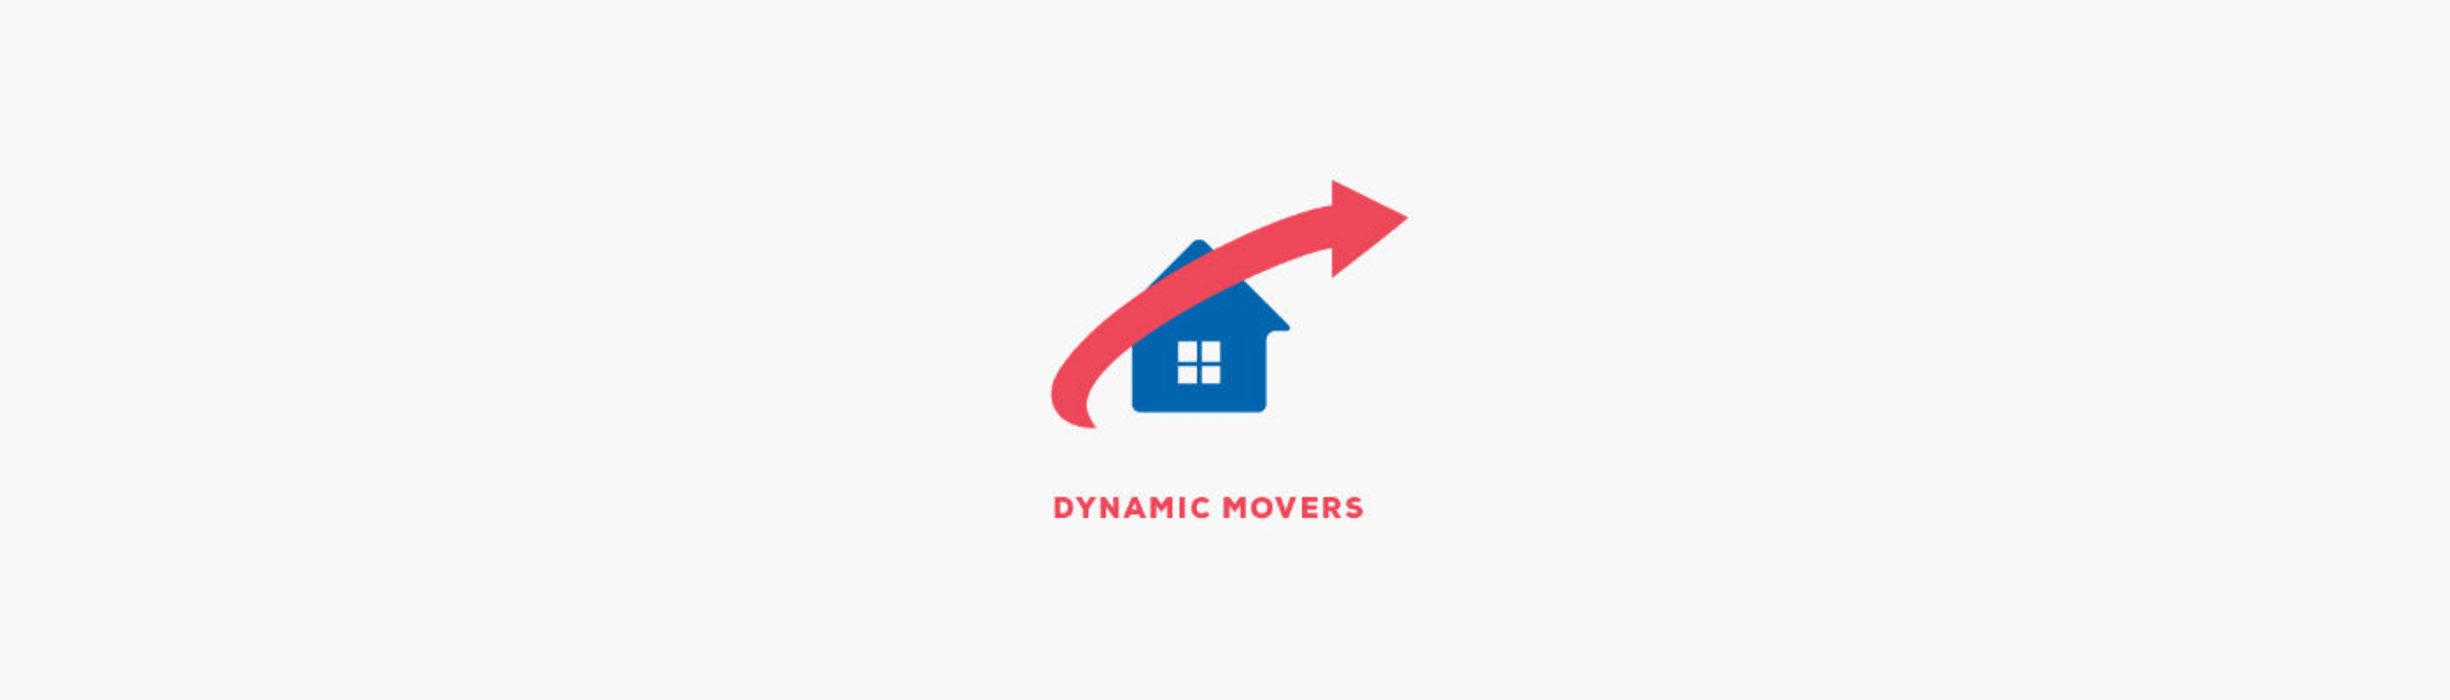 Dynamic Movers Brooklyn 辦公室&店面